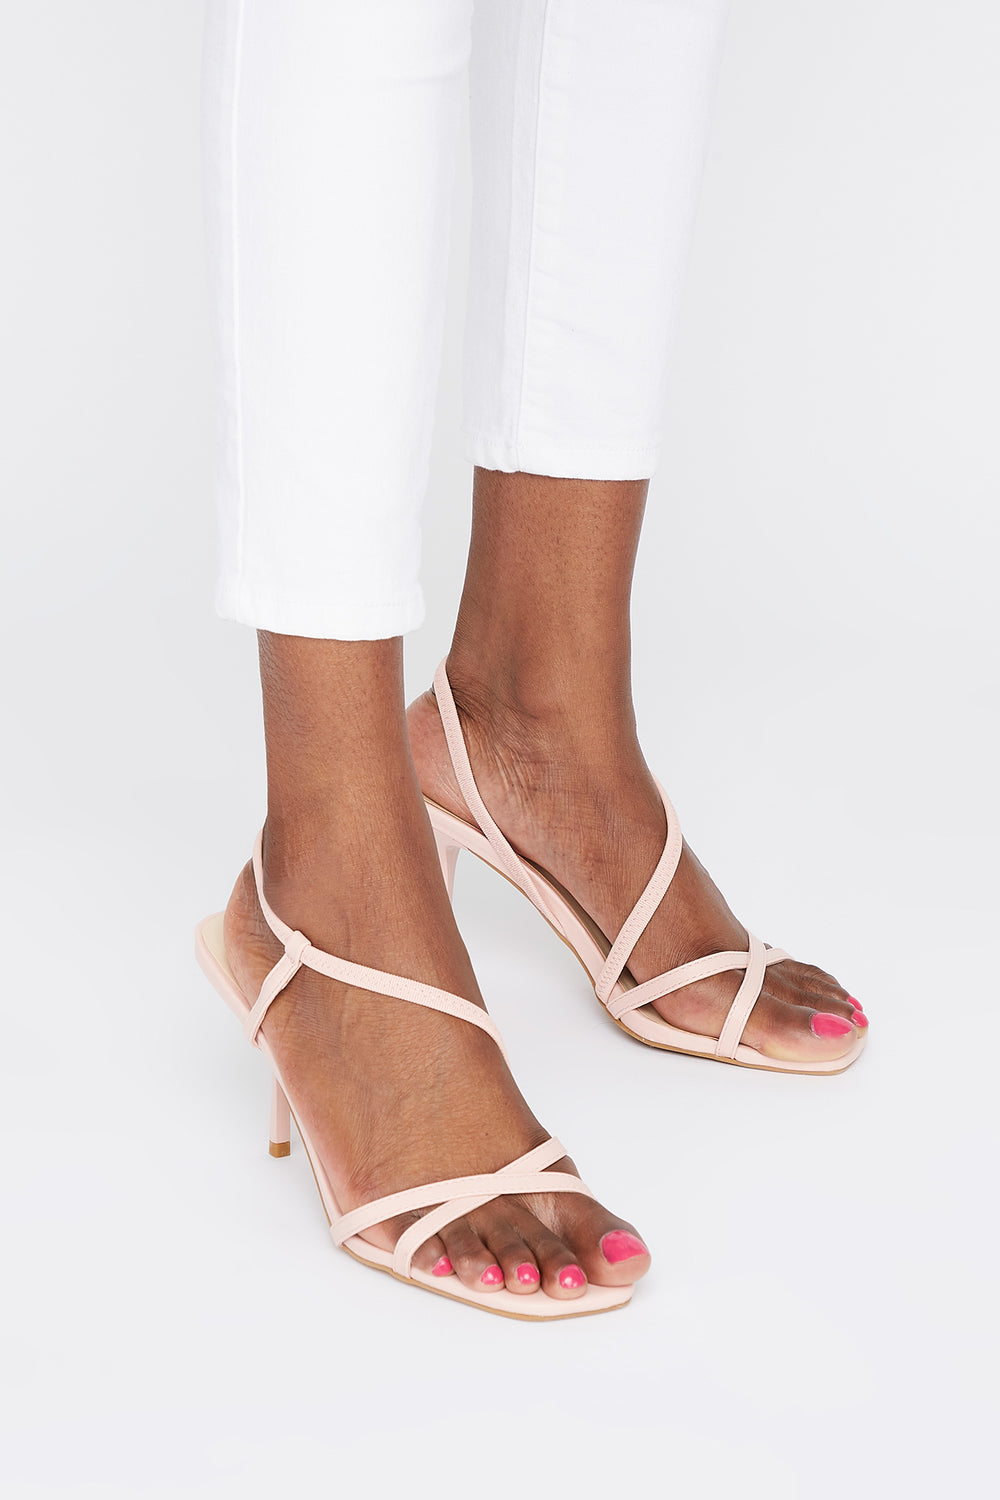 Strappy Mid Heel Sandal Light Pink